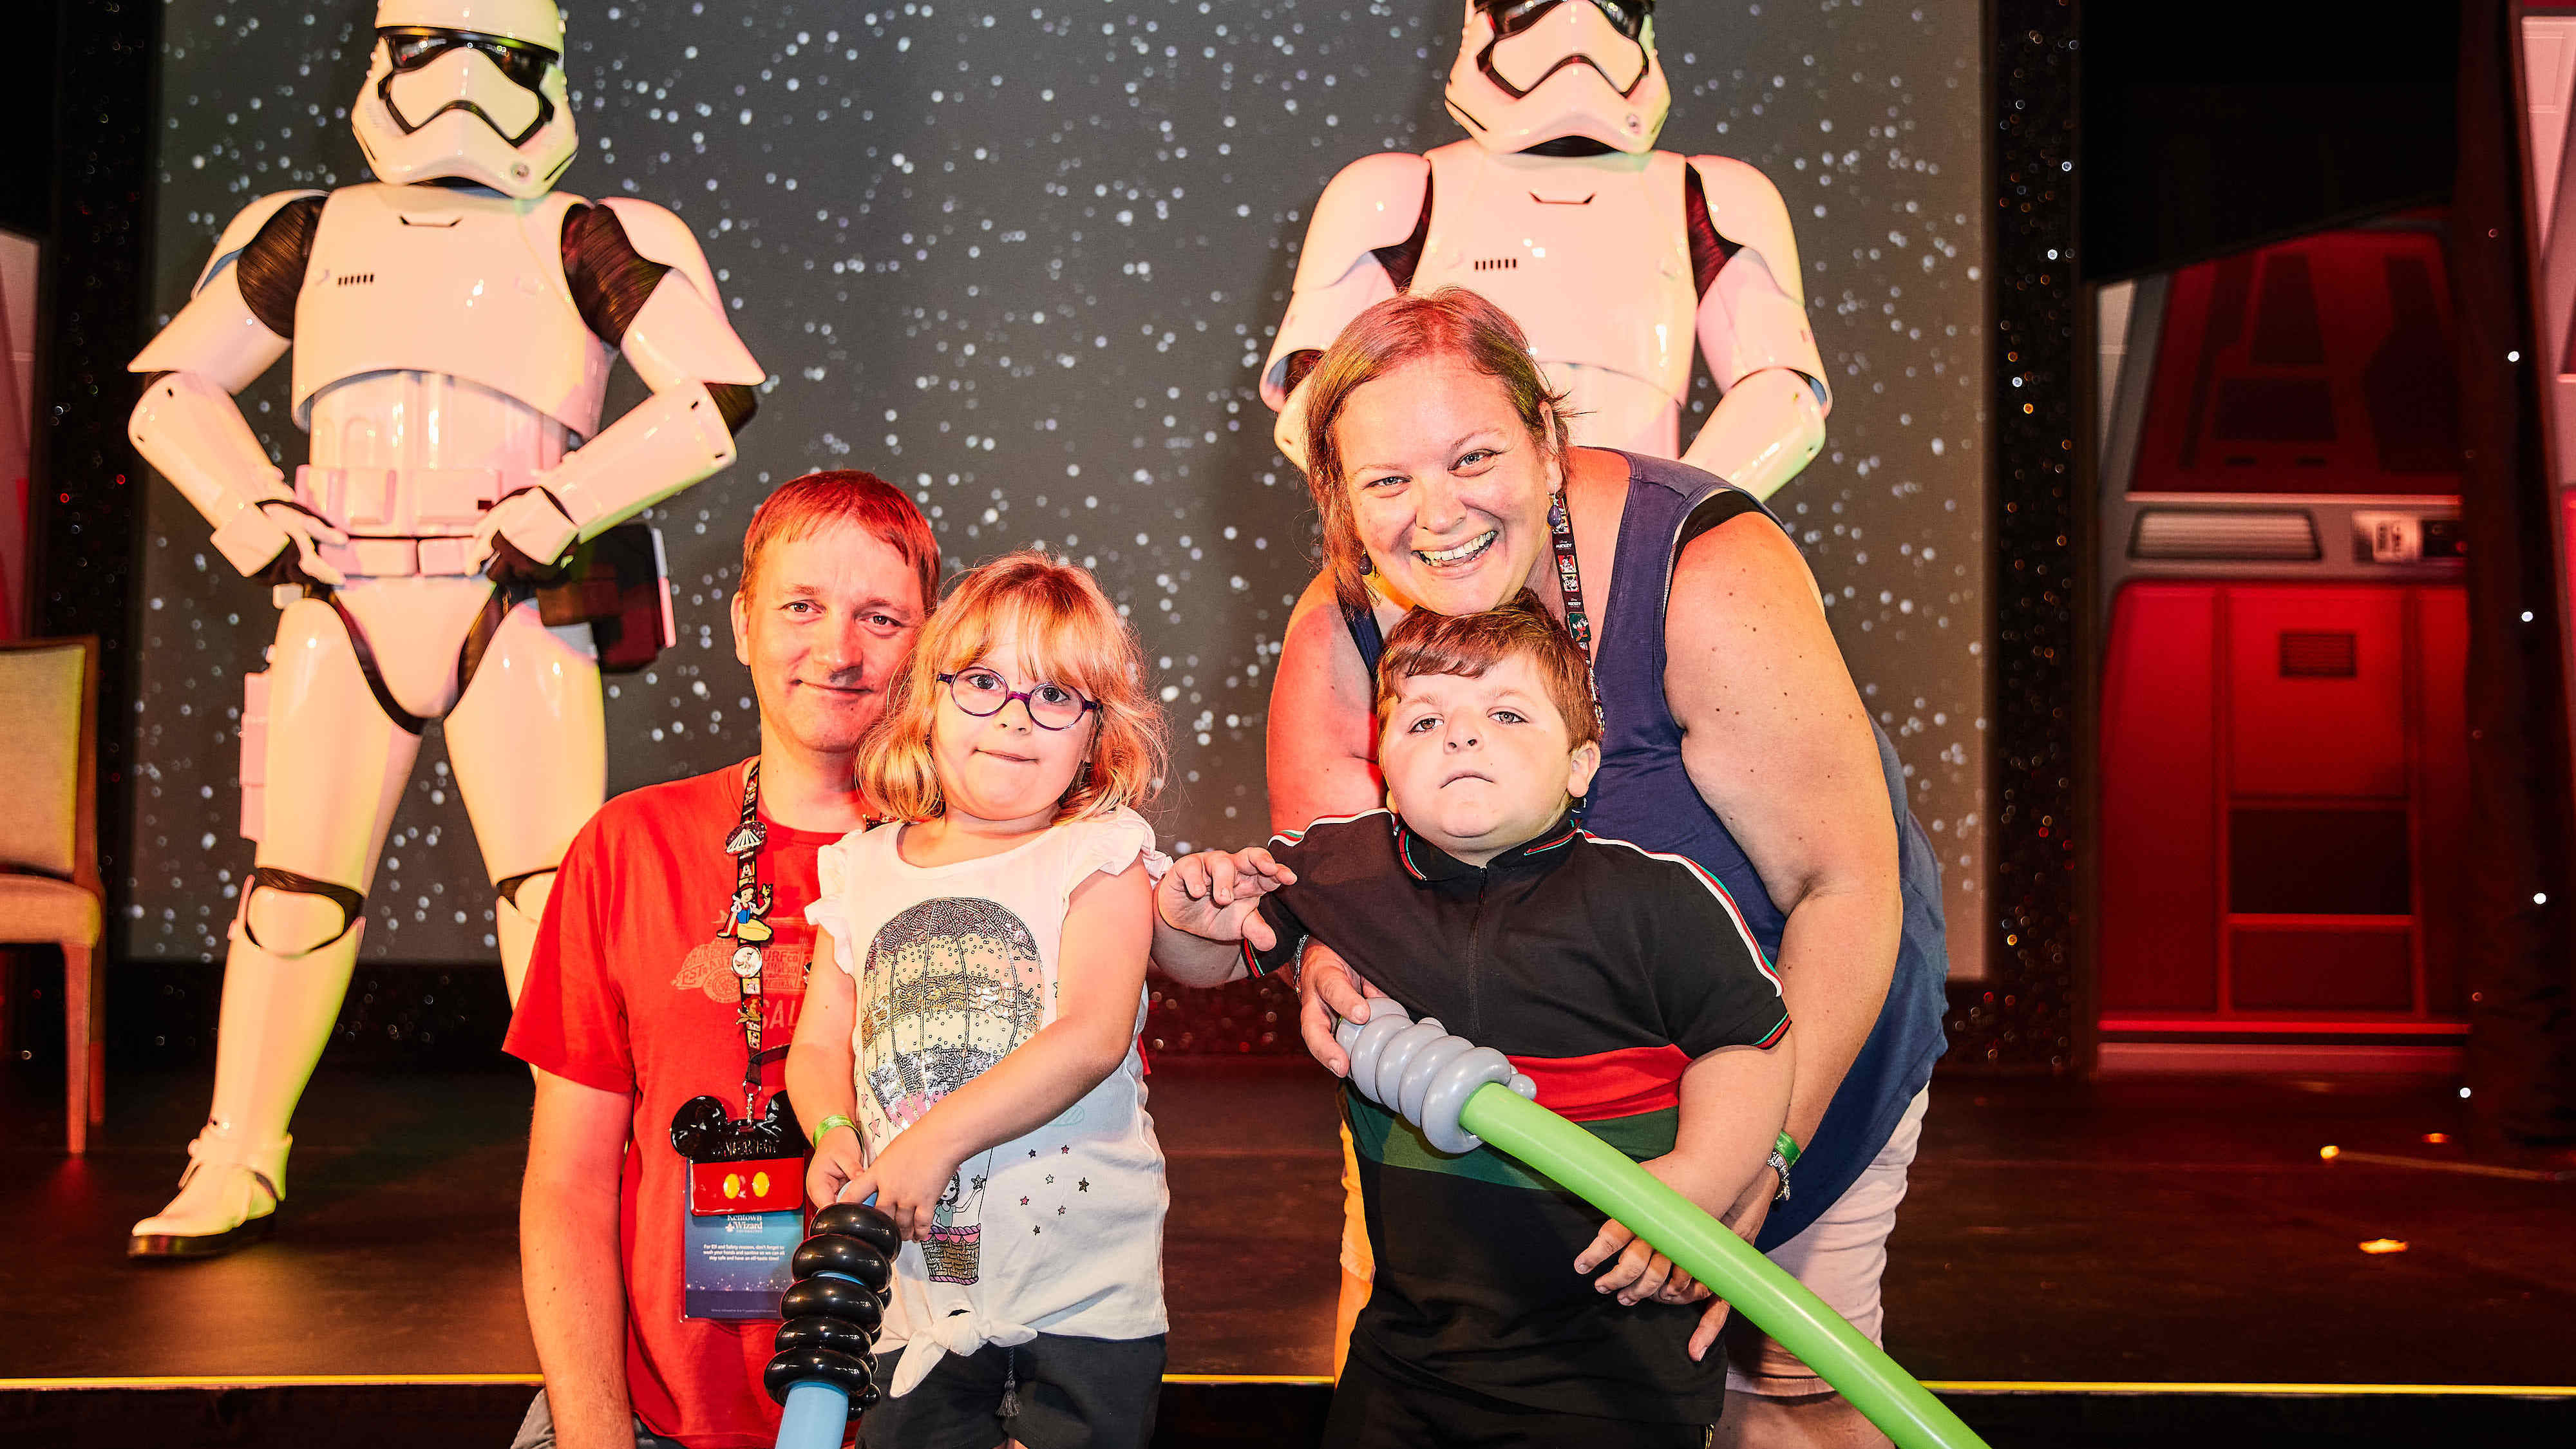 Family pictured with Stormtroopers after the Jedi Experience